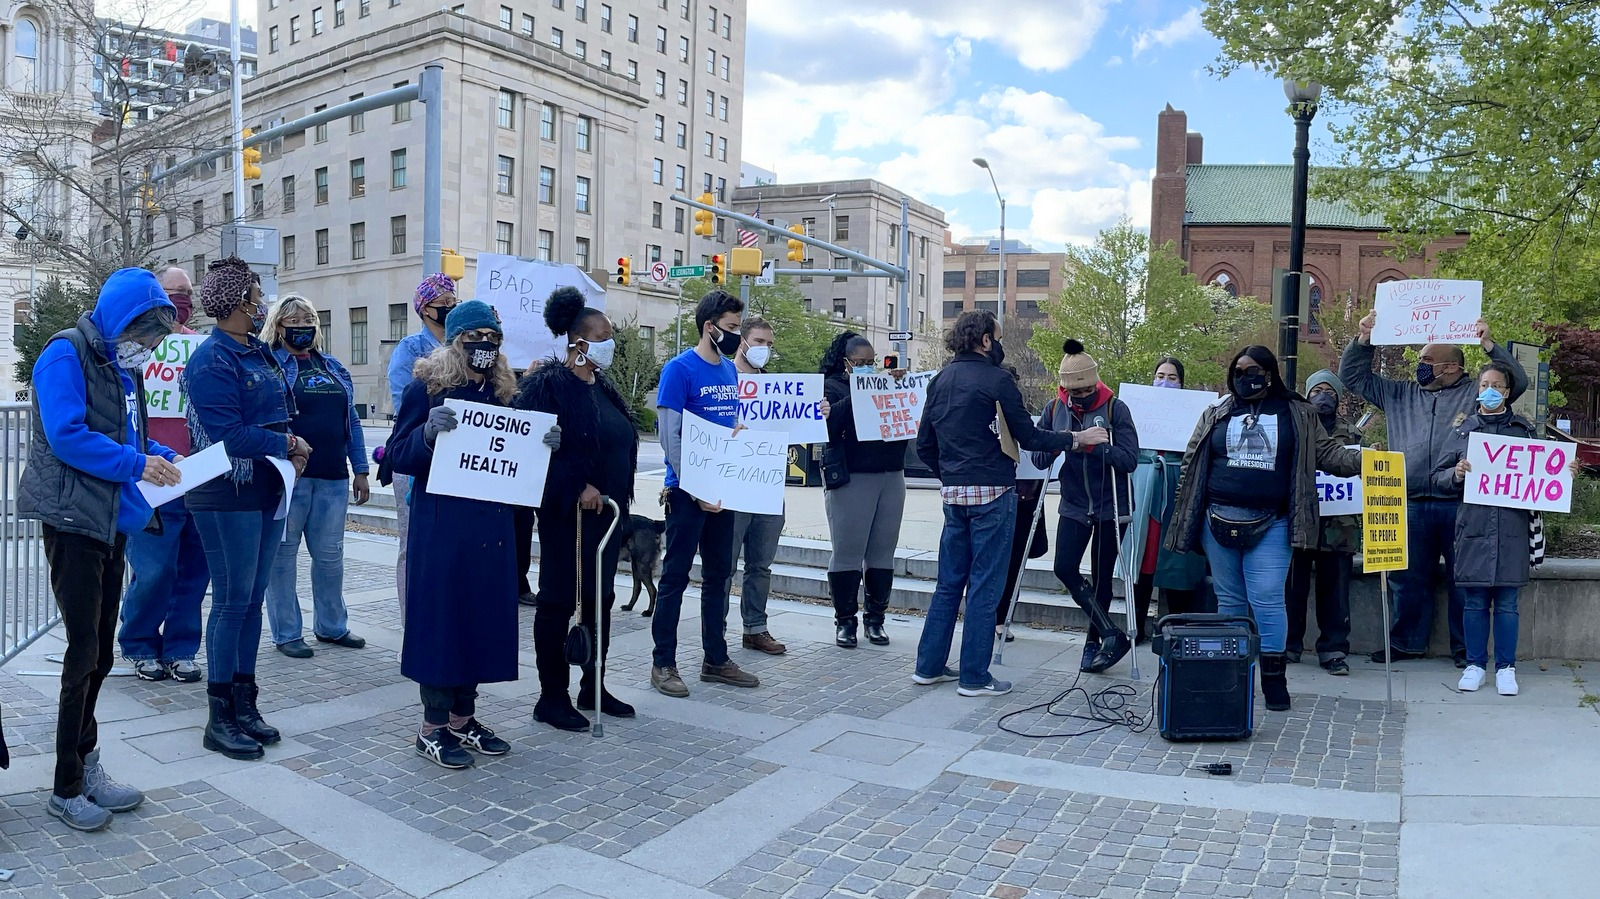 A protest organized by the Baltimore Renters United Coalition calls for Mayor Scott to veto a bill promoting surety bonds that Council President Mosby has been backing. (Fern Shen)